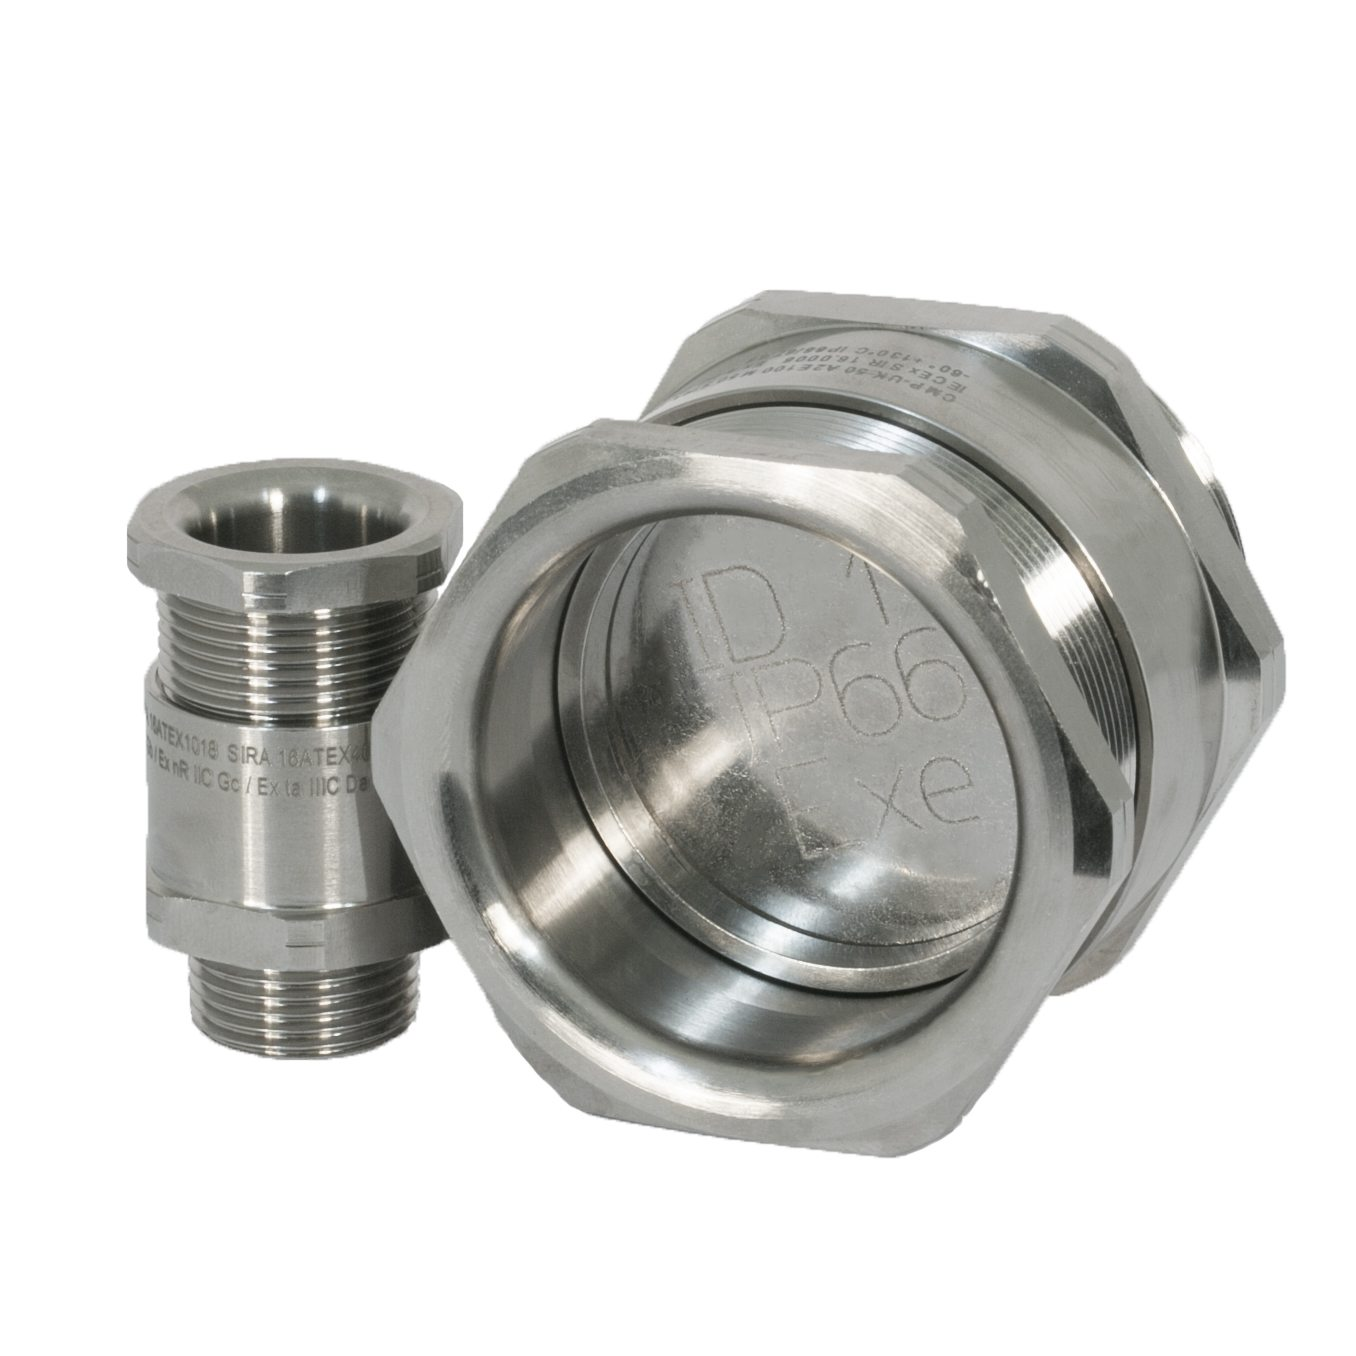 A-100 Series Cable Glands